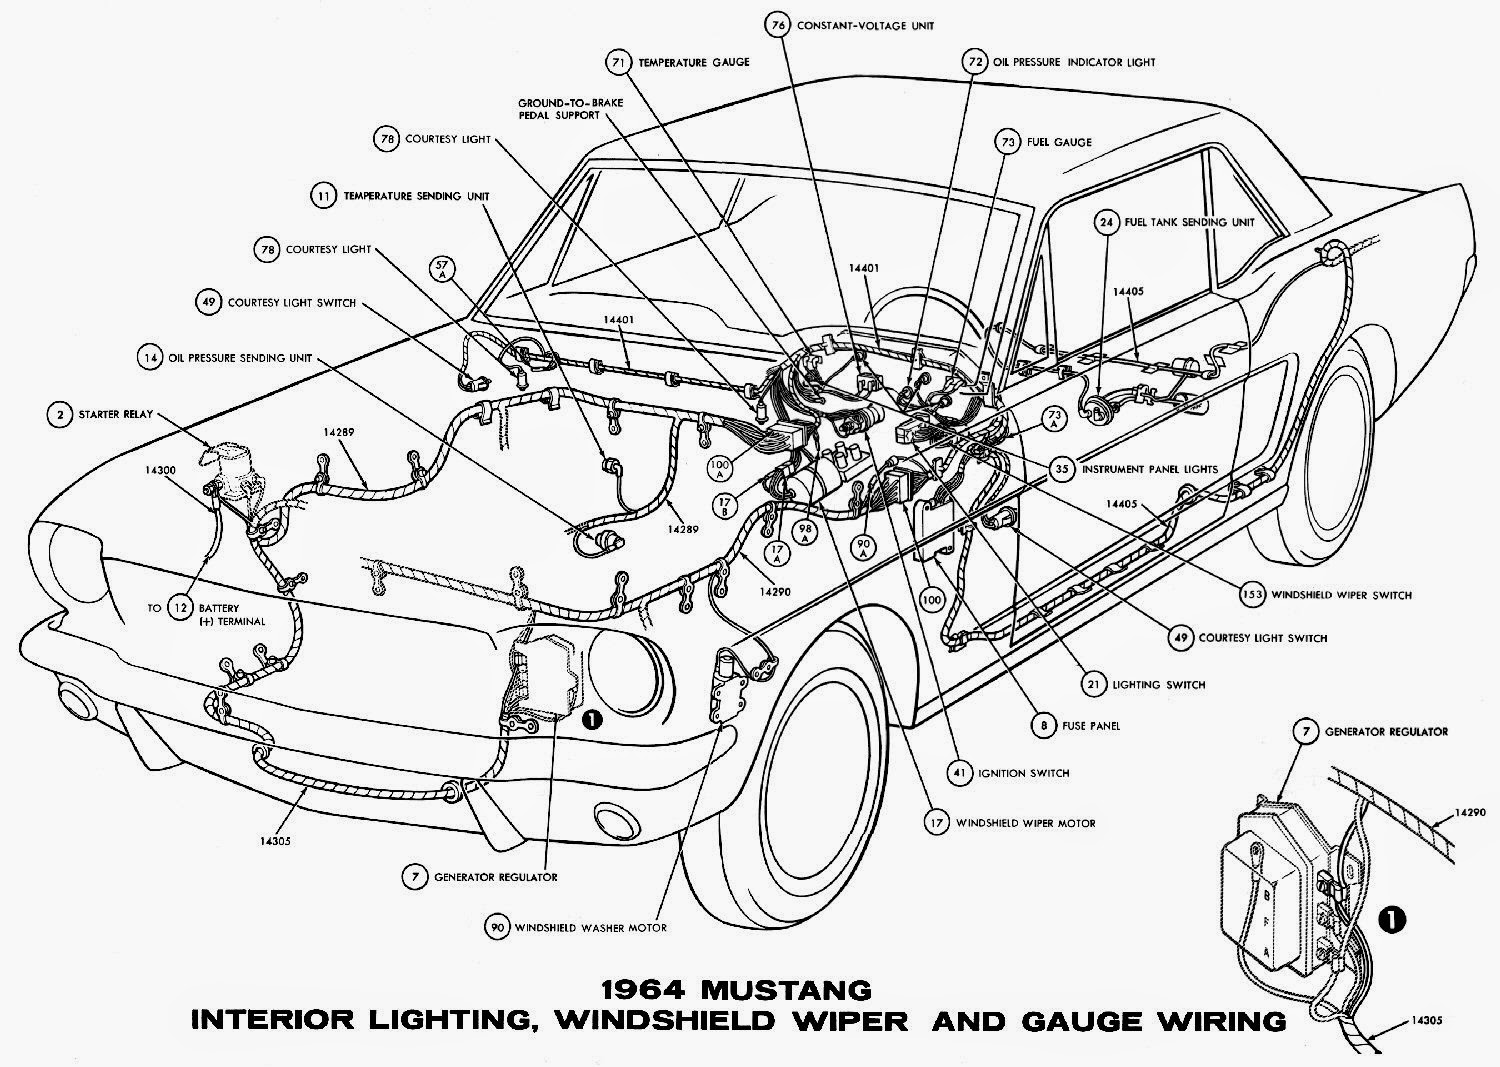 1963 ford galaxie dash wiring diagram 1963 discover your wiring harley davidson dash electrical schematic 1963 ford galaxie dash wiring diagram moreover 1964 mustang